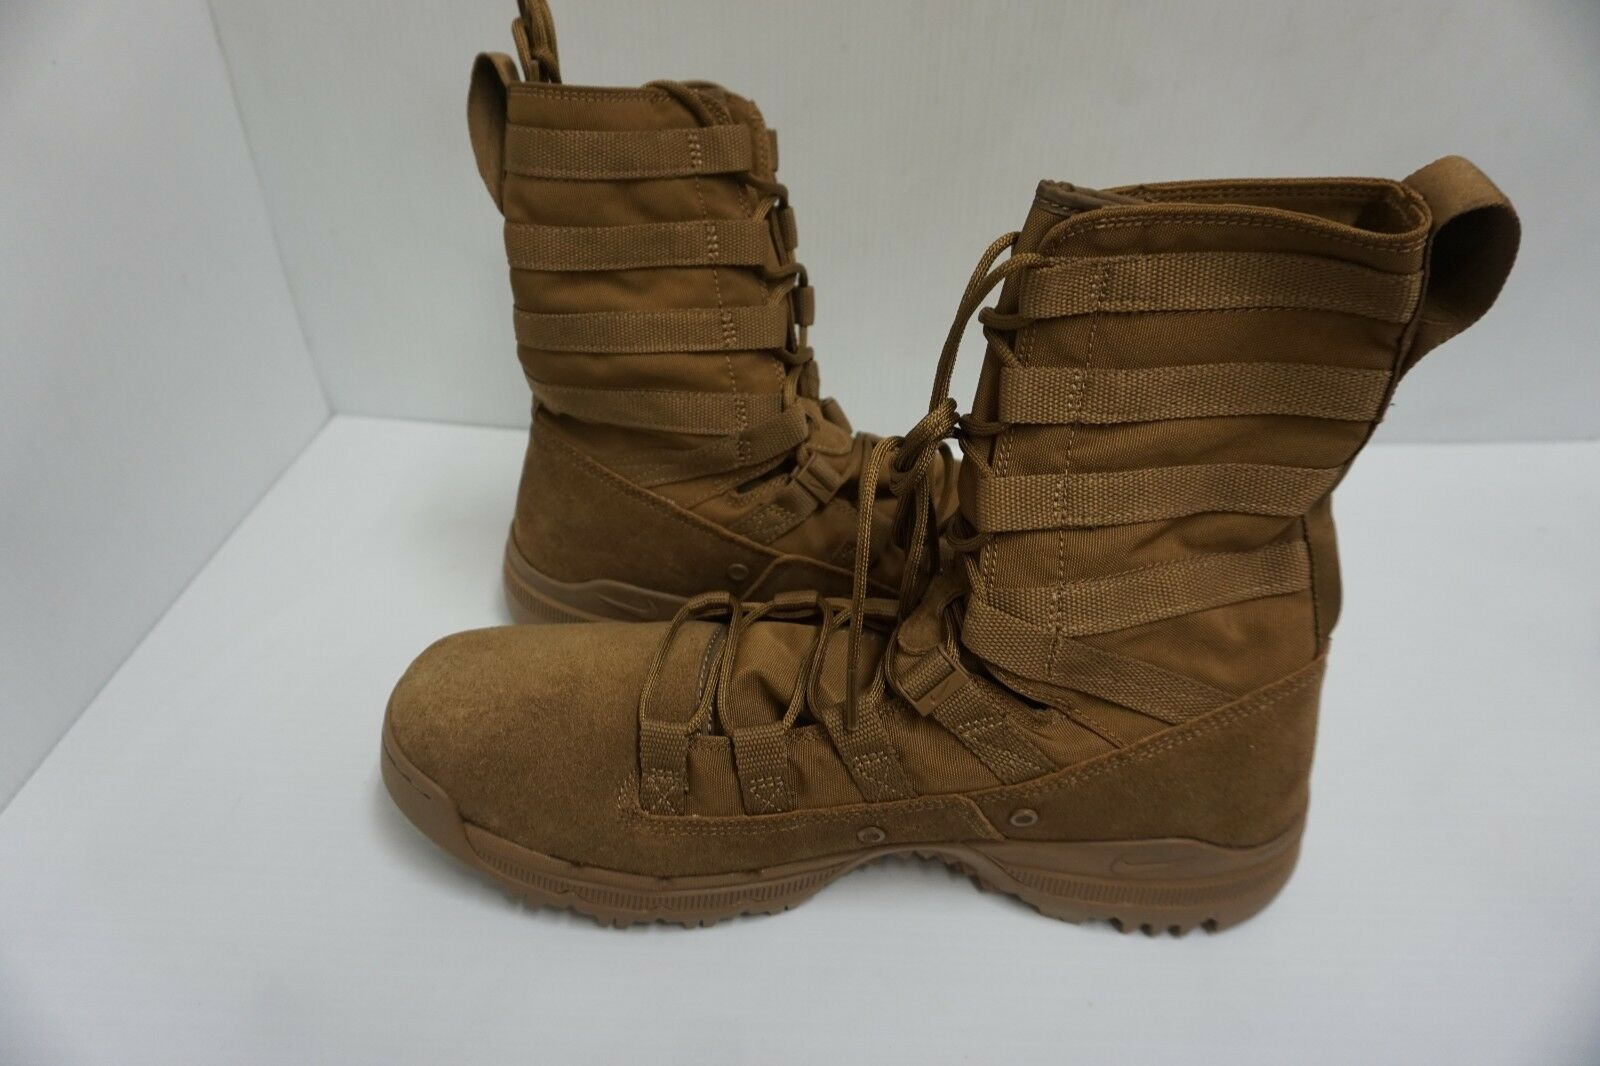 Nike SFB gen 2 8  leather hiking boots size 13 men new